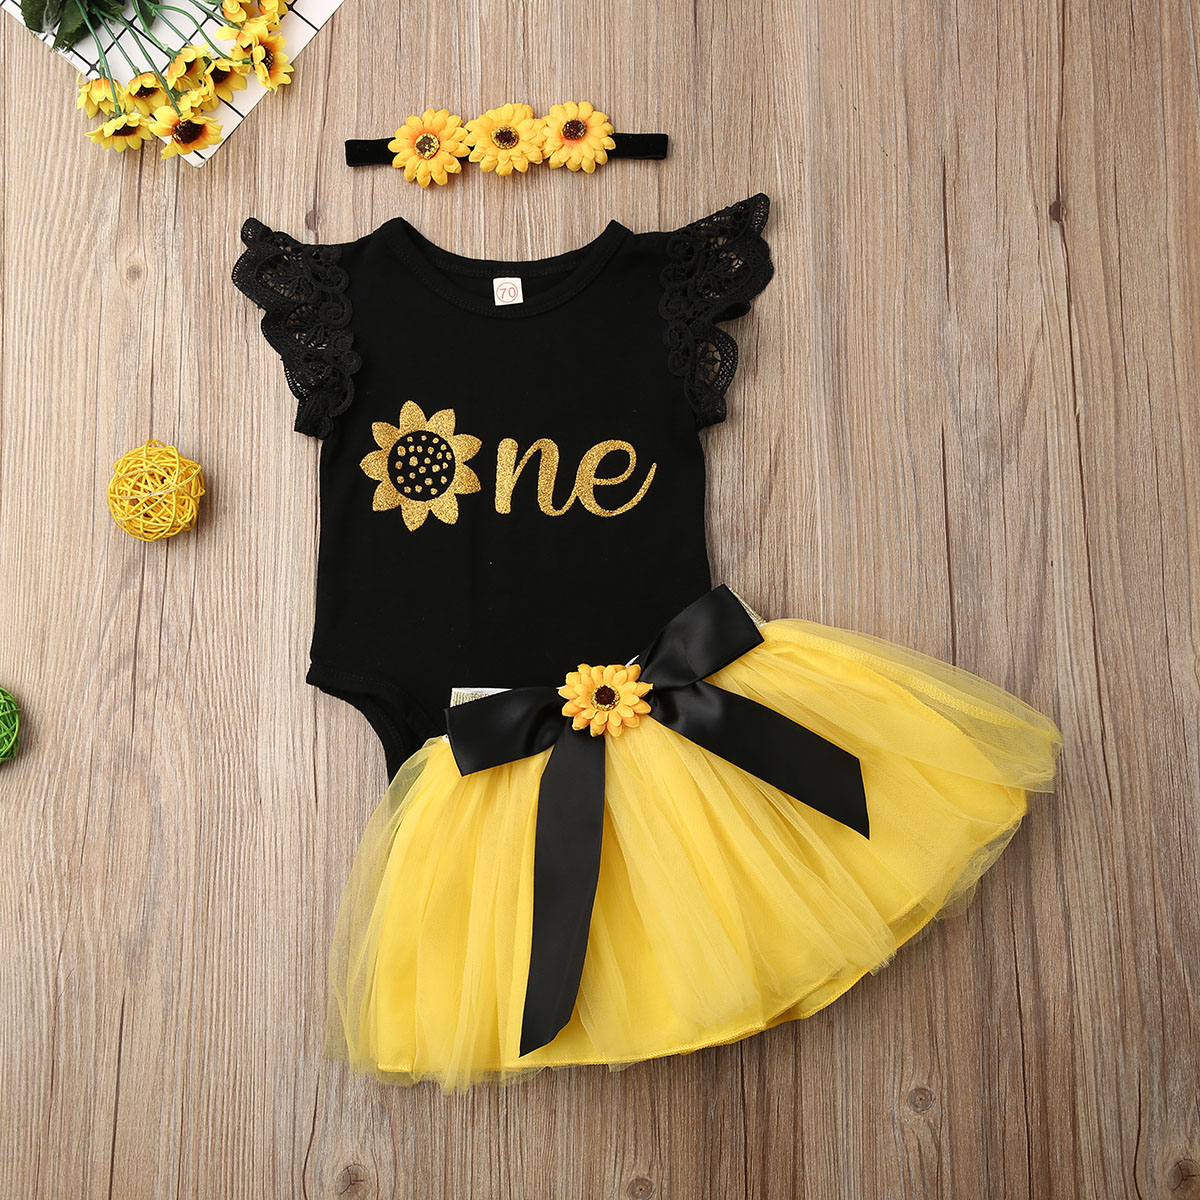 Pudcoco Newborn Baby Girl Clothes My 1st Birthday Lace Ruffle Sleeveless Romper Tops Mini Tulle Skirt Headband 3Pcs Outfits Set